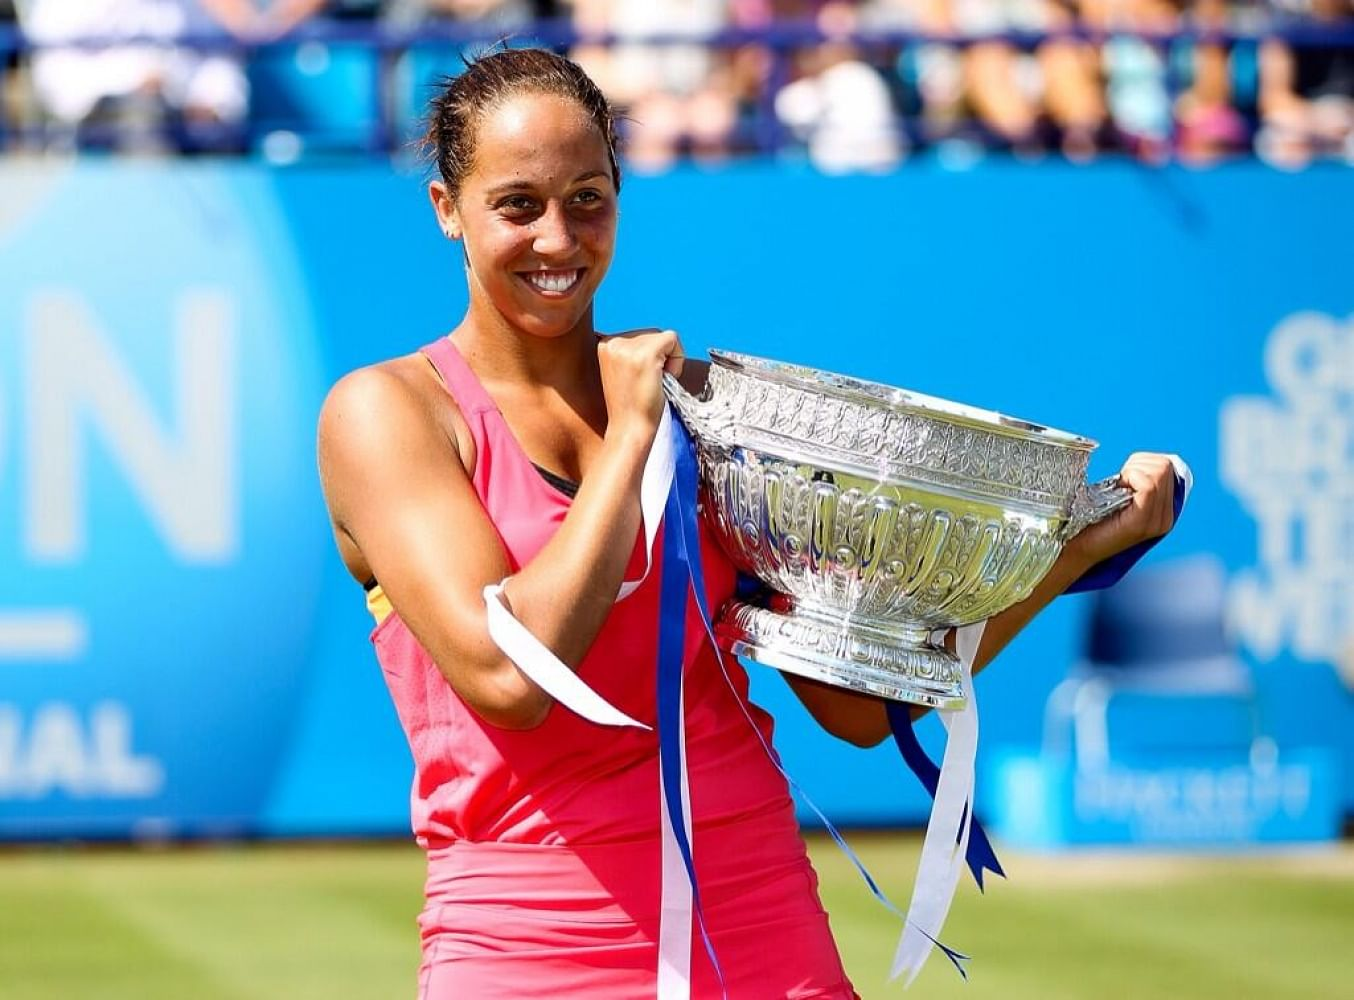 Top 10 women's tennis matches of 2014